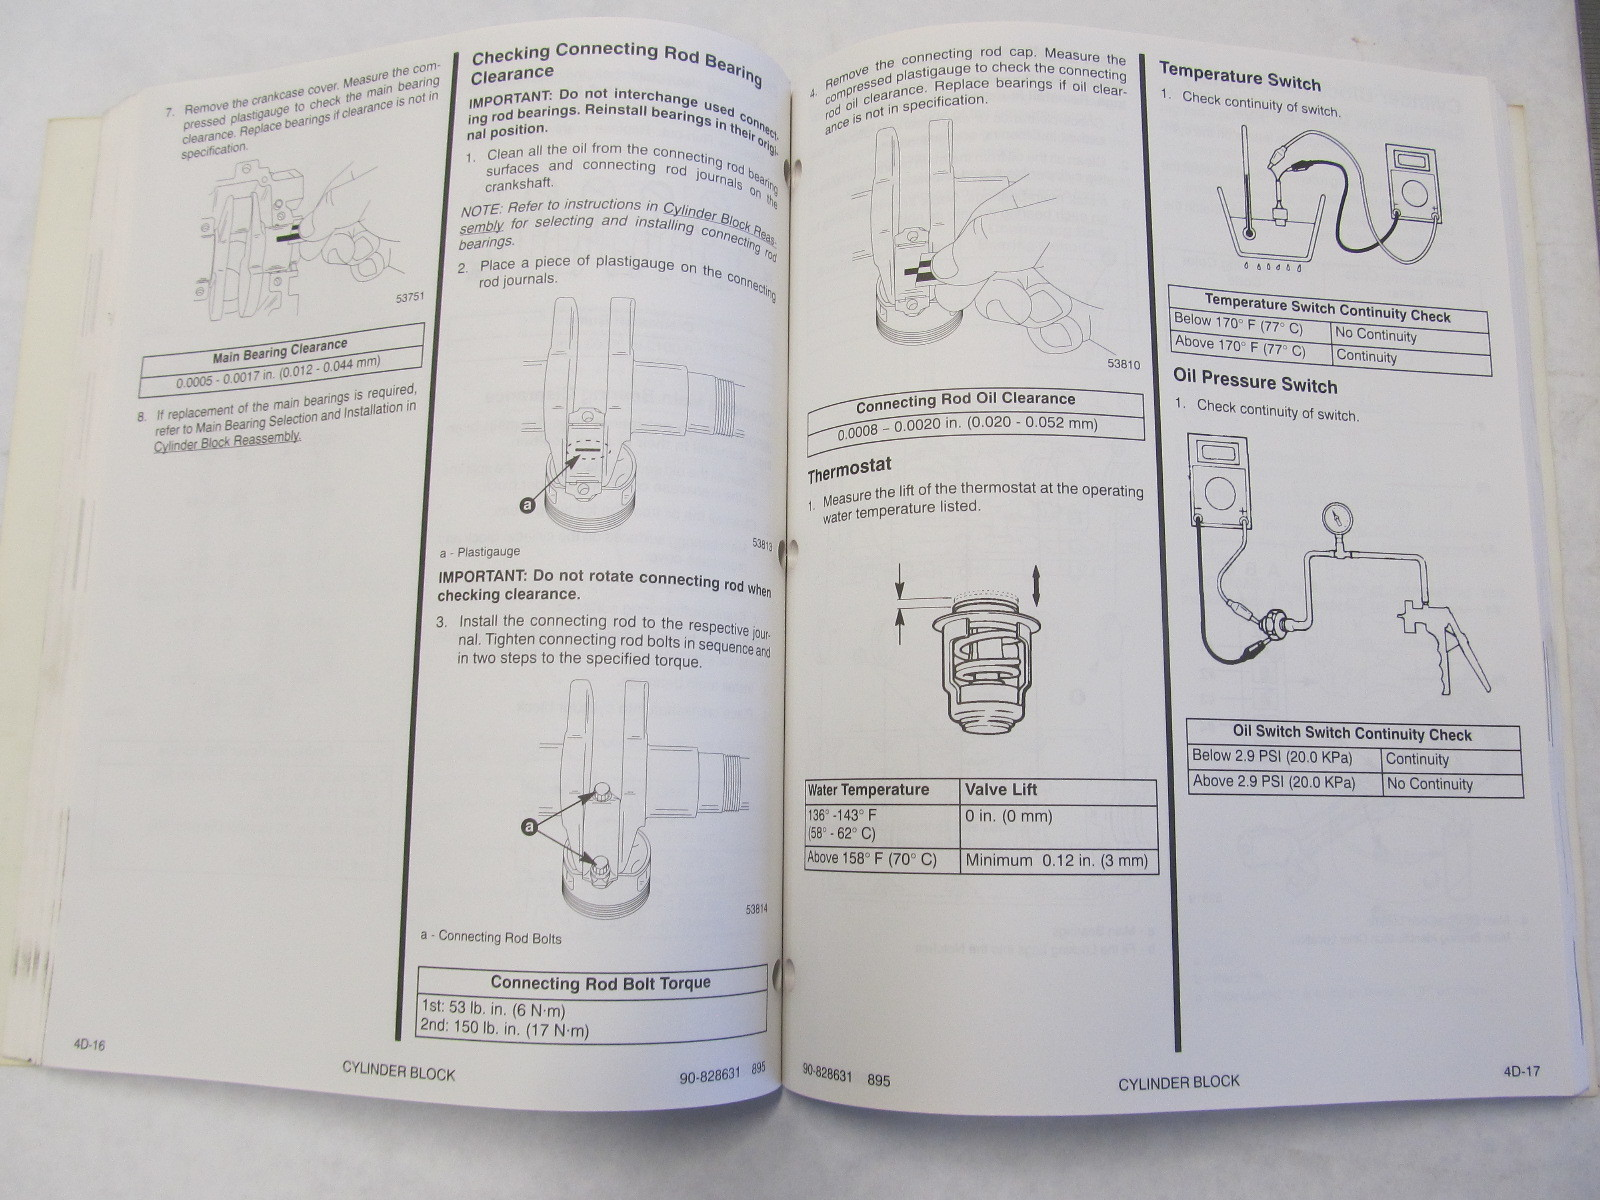 ... 1995 Mercury Mariner Outboard Service Manual 45-50 HP 4-Stroke